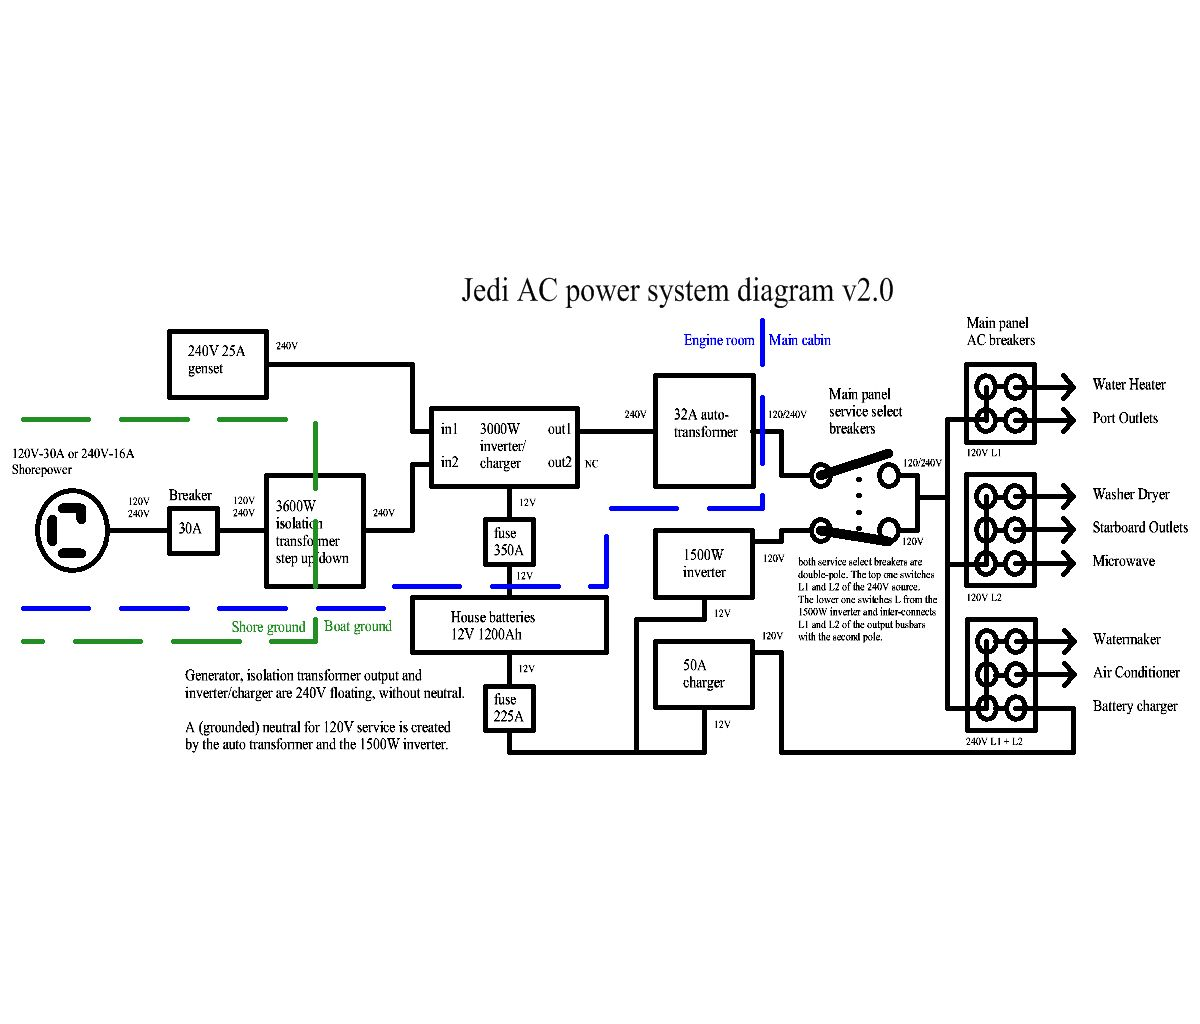 3 phase autotransformer wiring diagram images wiring diagram marine wiring diagrams for car or